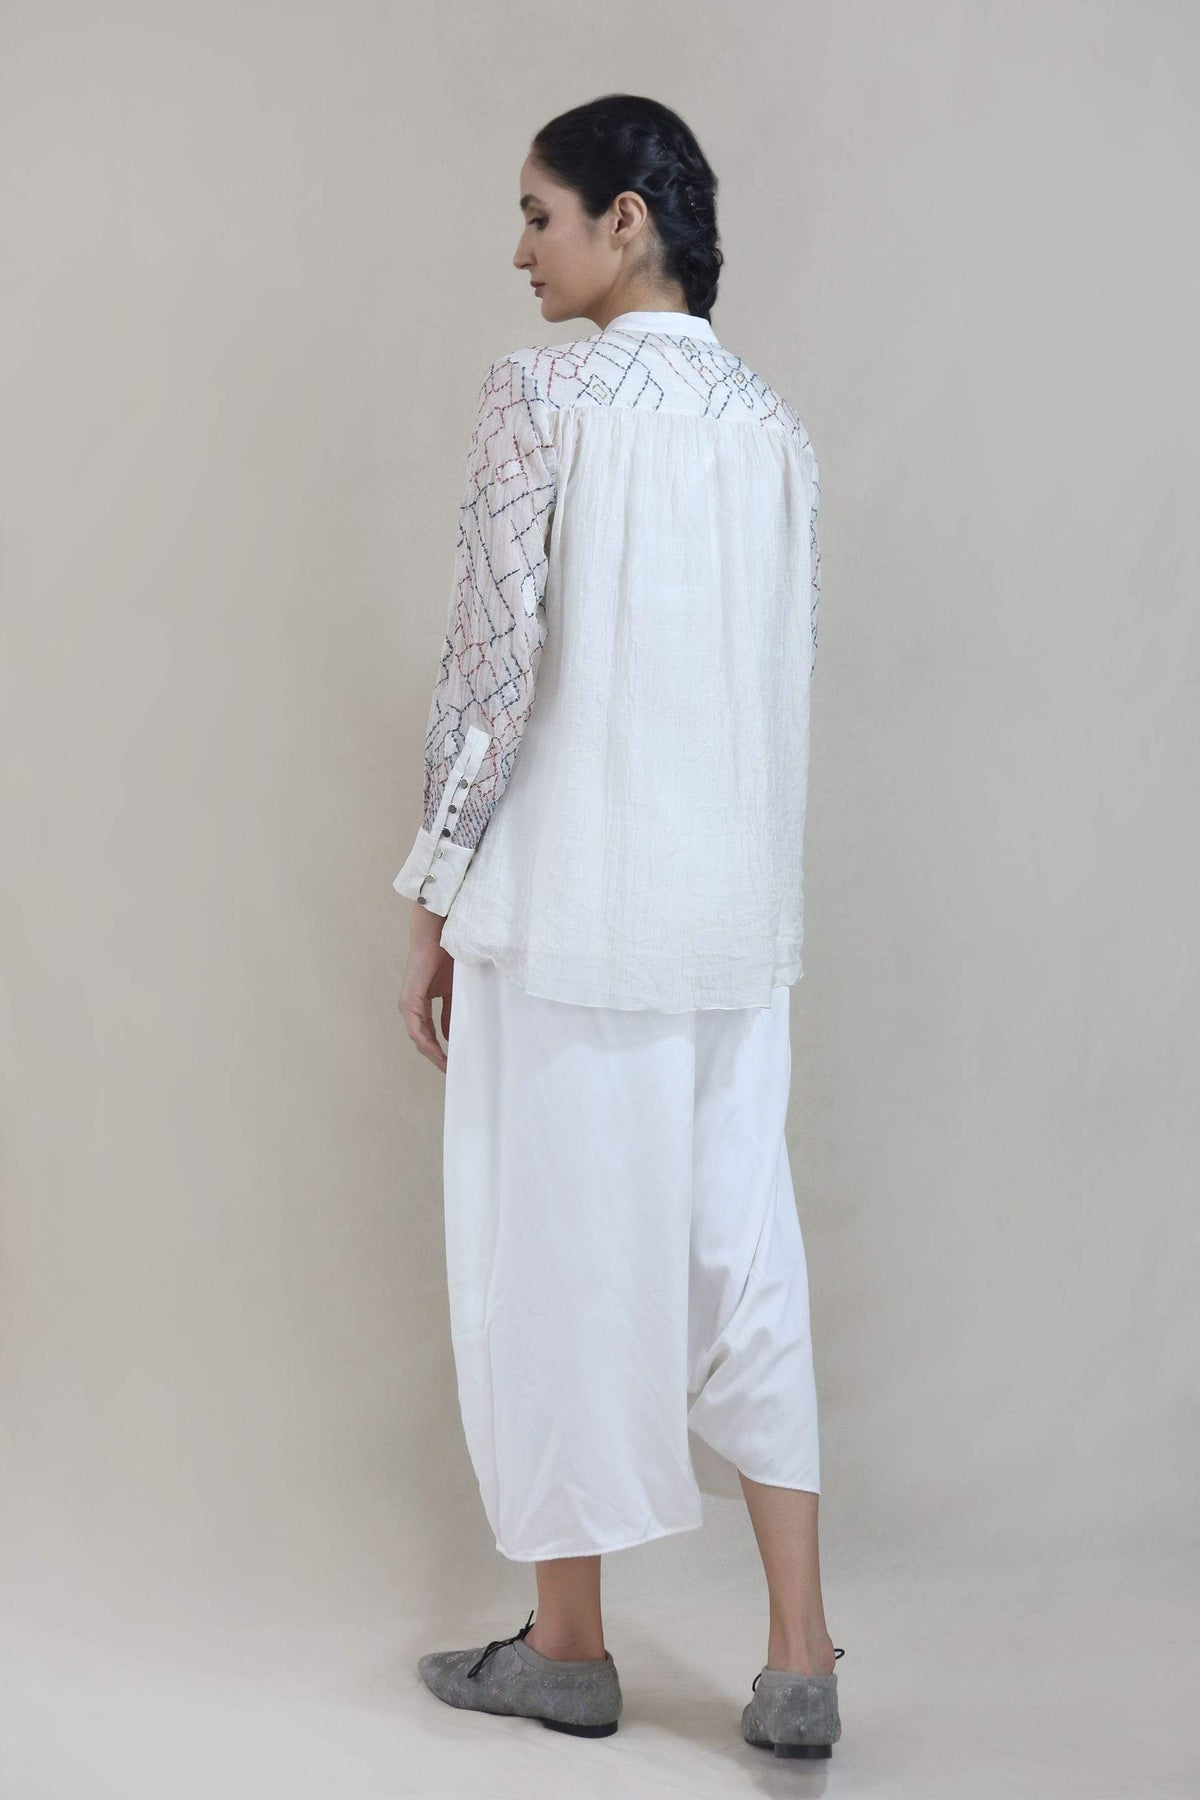 Integument Shirts & Tops Latice embroidered shirt